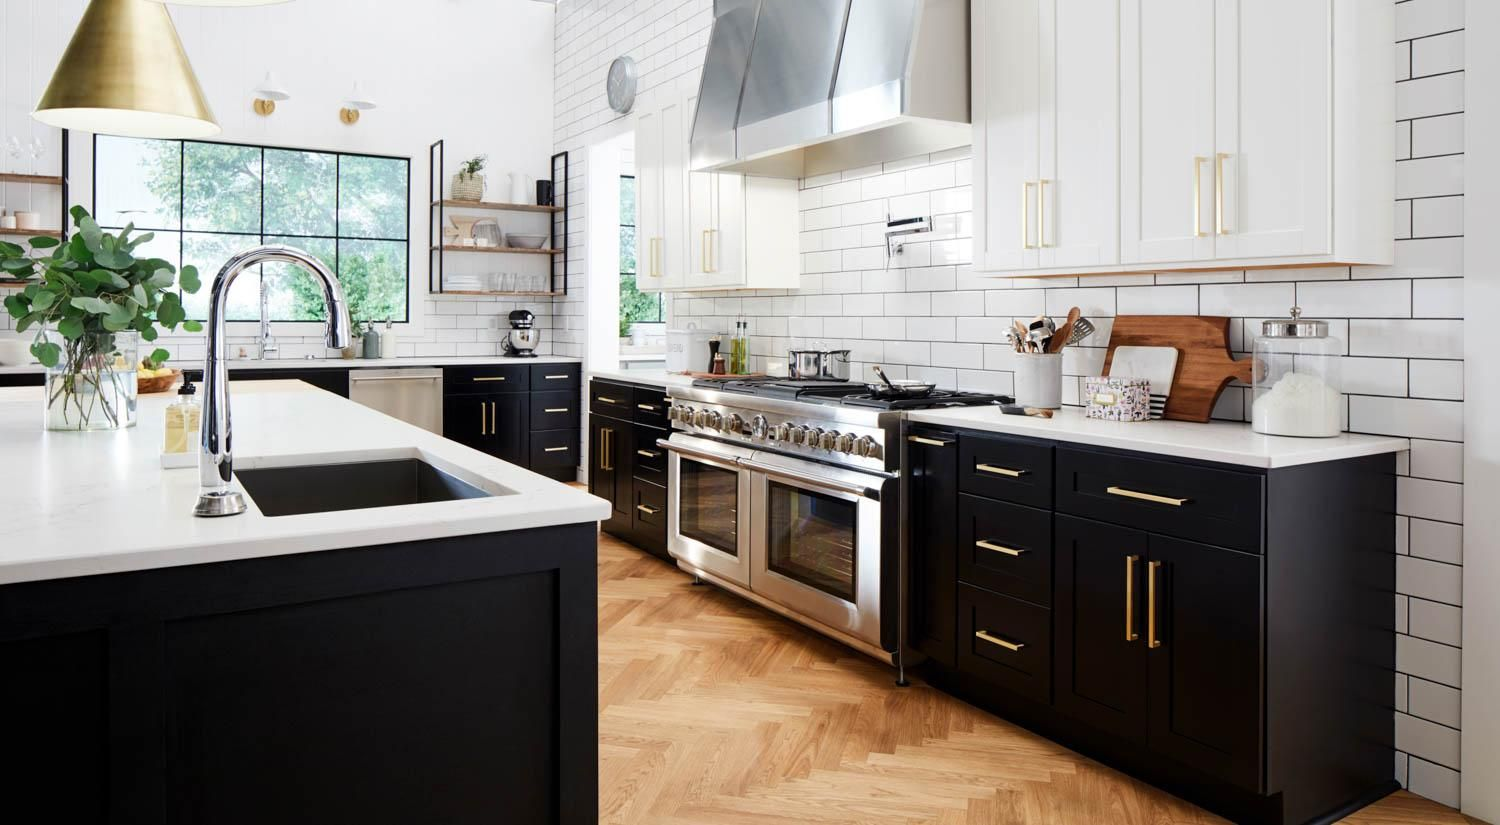 This Is The Absolute Dream Kitchen The Black And White Cabinets